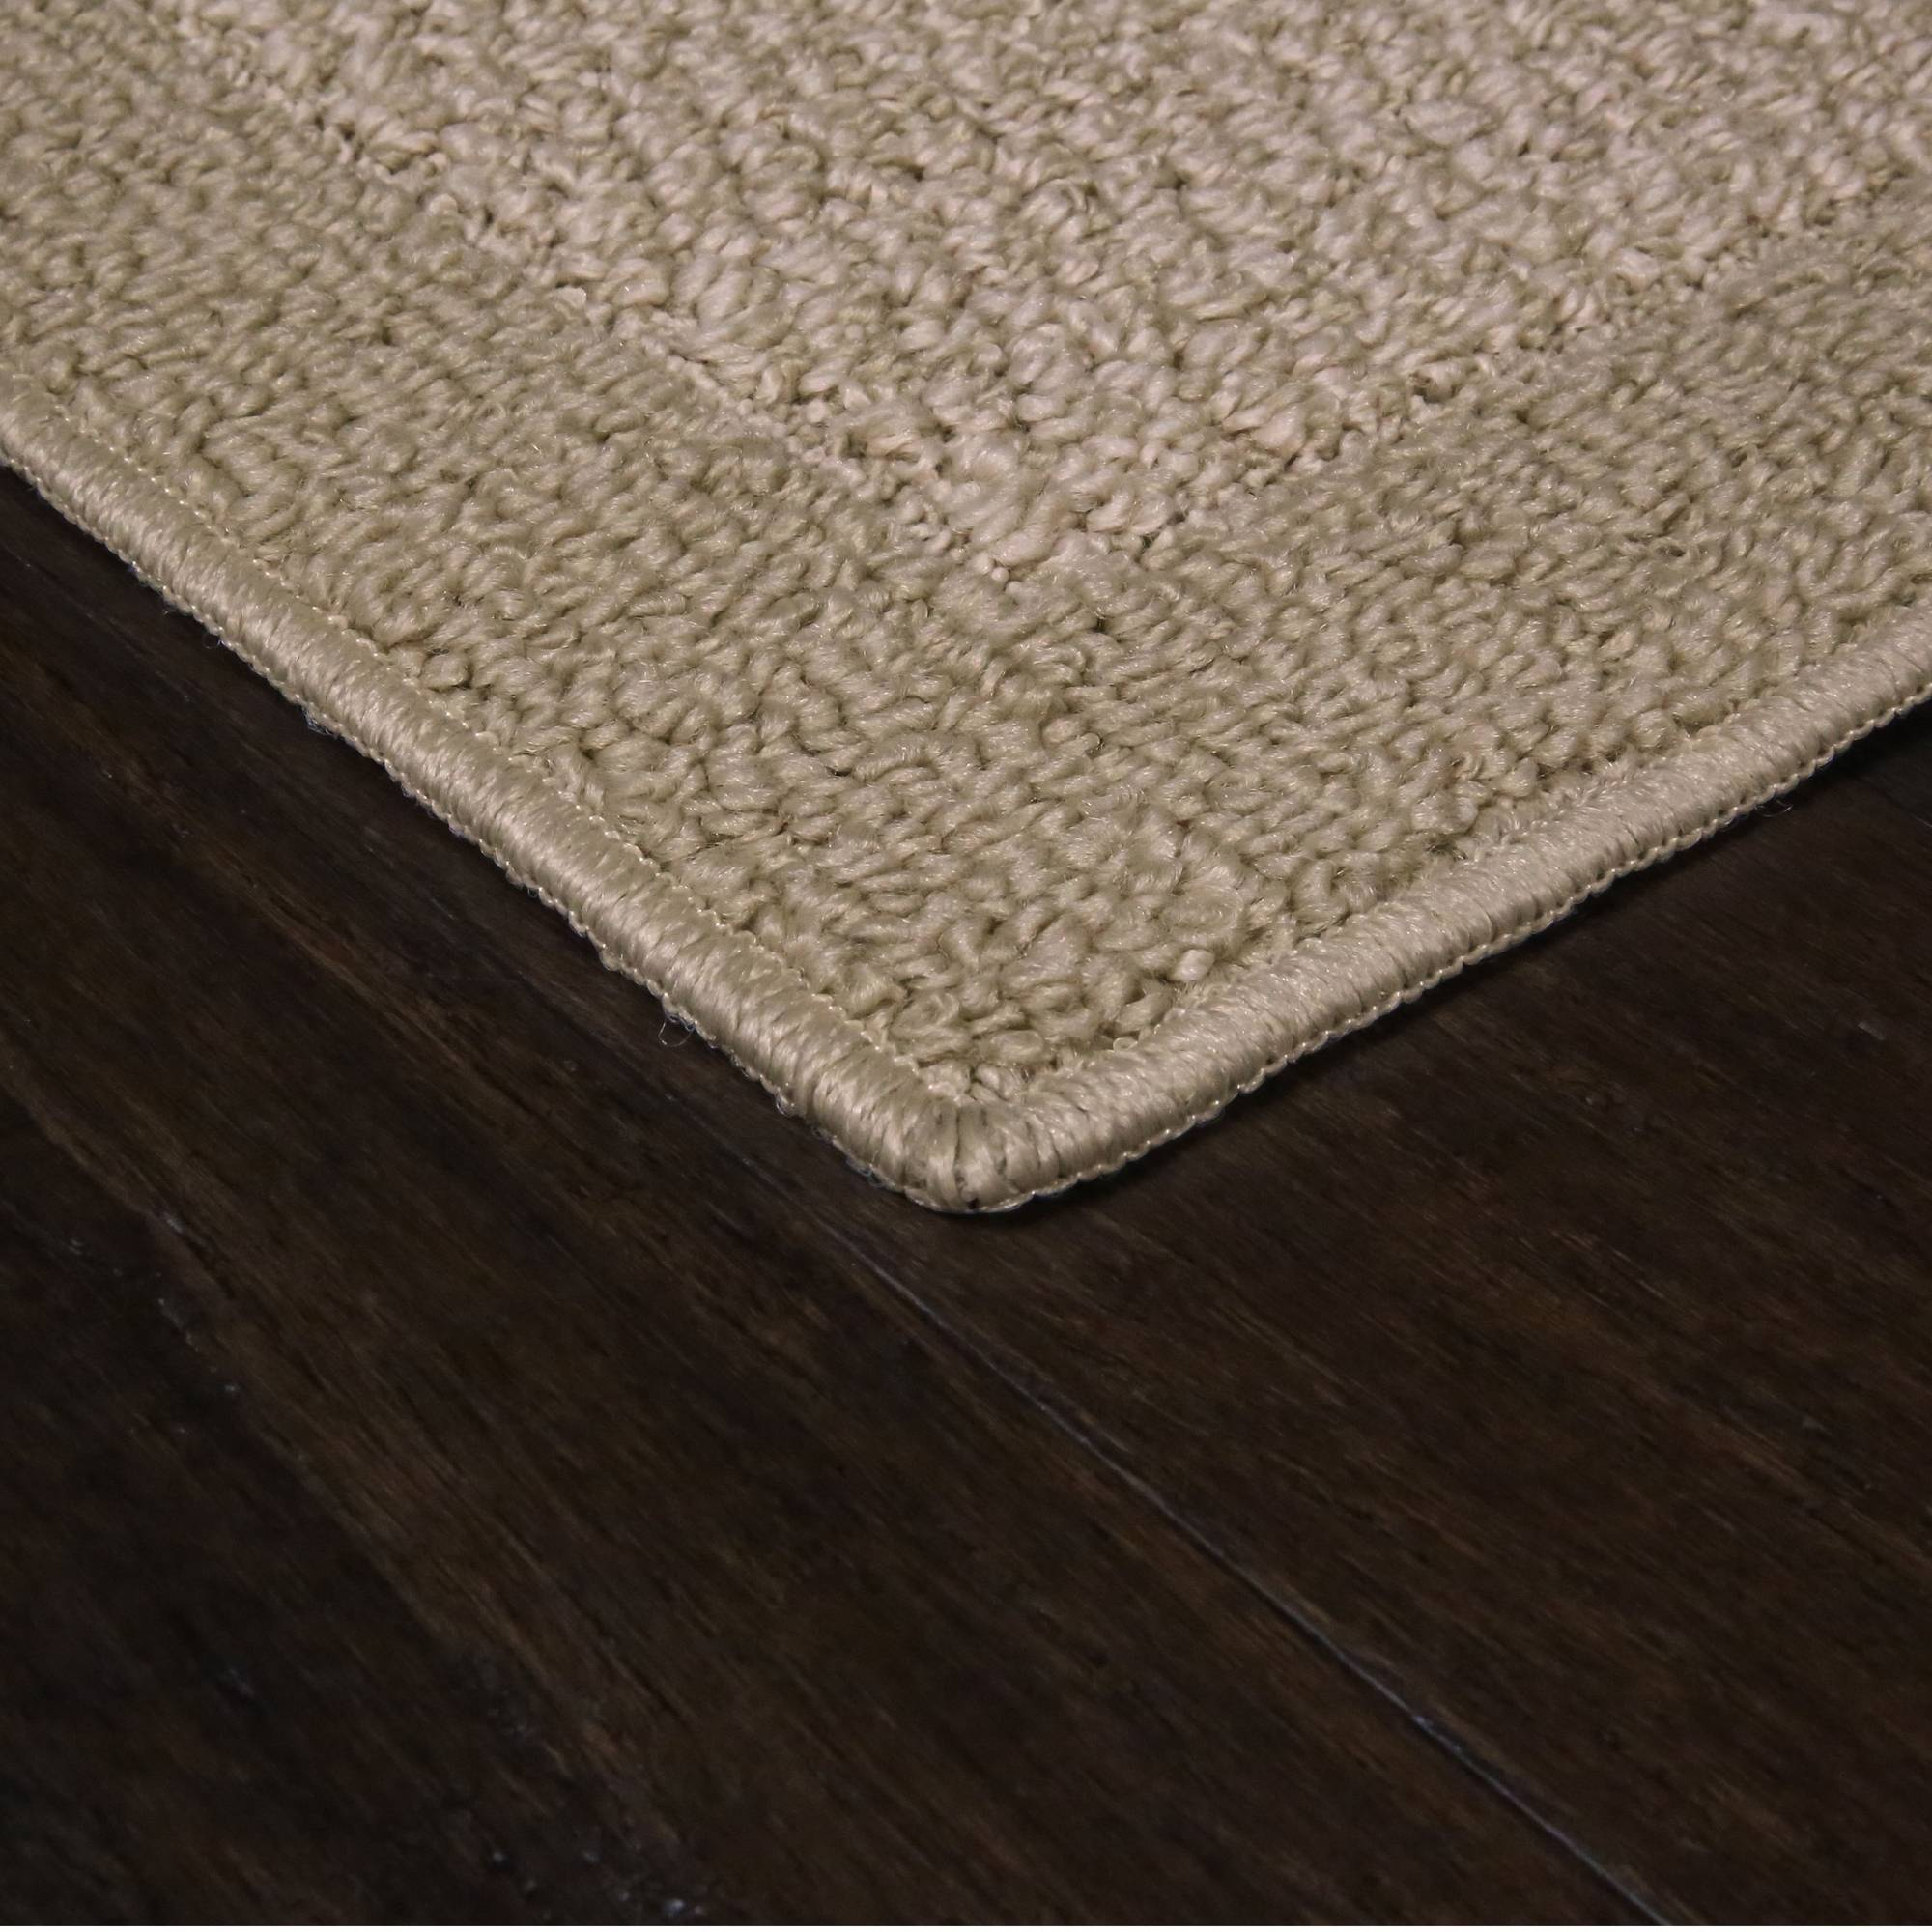 Synthetic Sisal Rugs Uk Allaboutyouth Net